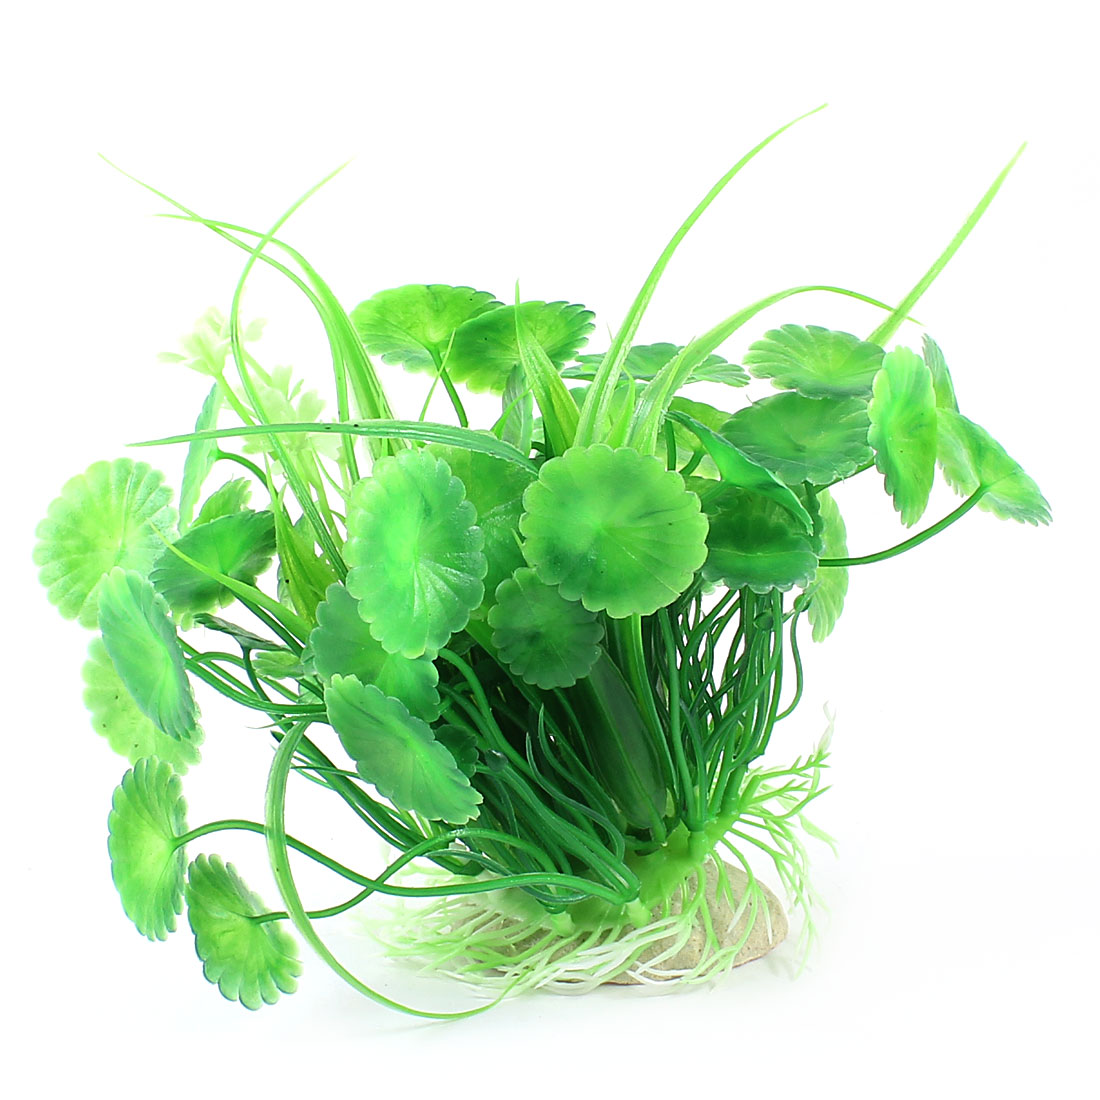 "Aquarium Fish Tank Ornament Landscaping Artificial Emulational Underwater Water Plant Grass Decor Green 4.7"" Height"